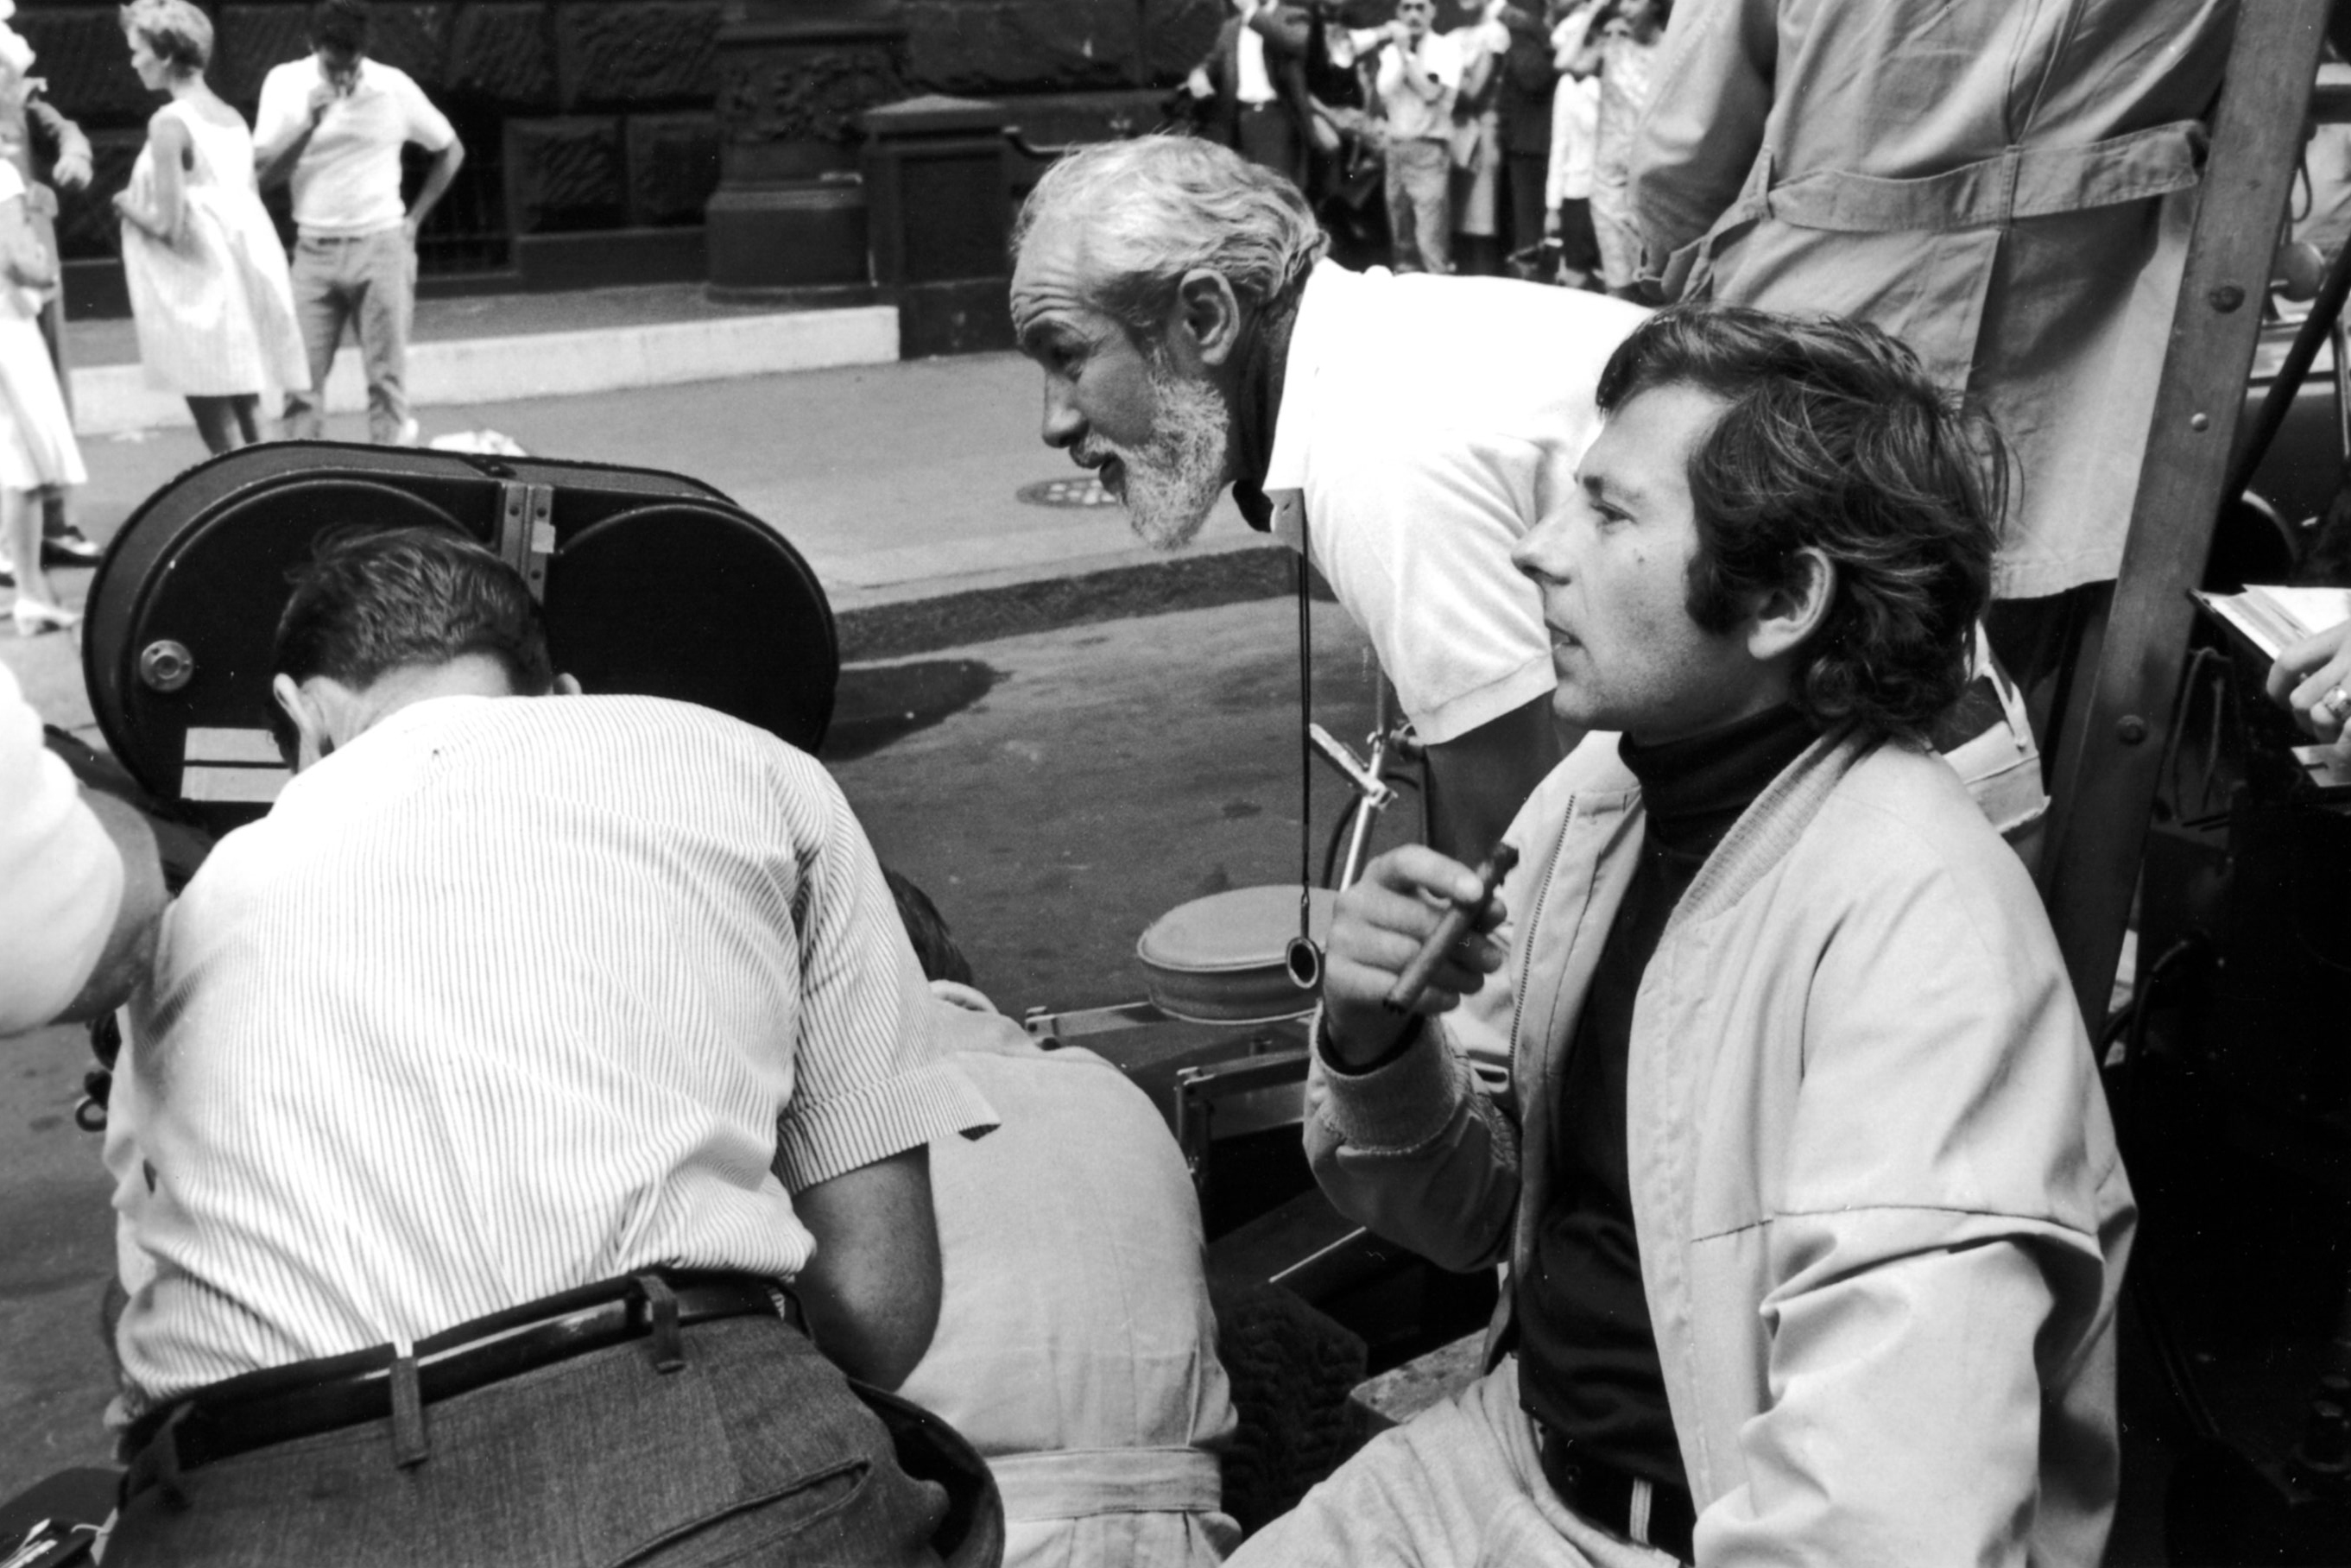 Fraker and Polanski plot their next shot on location in New York City. Image courtesy of AMPAS.